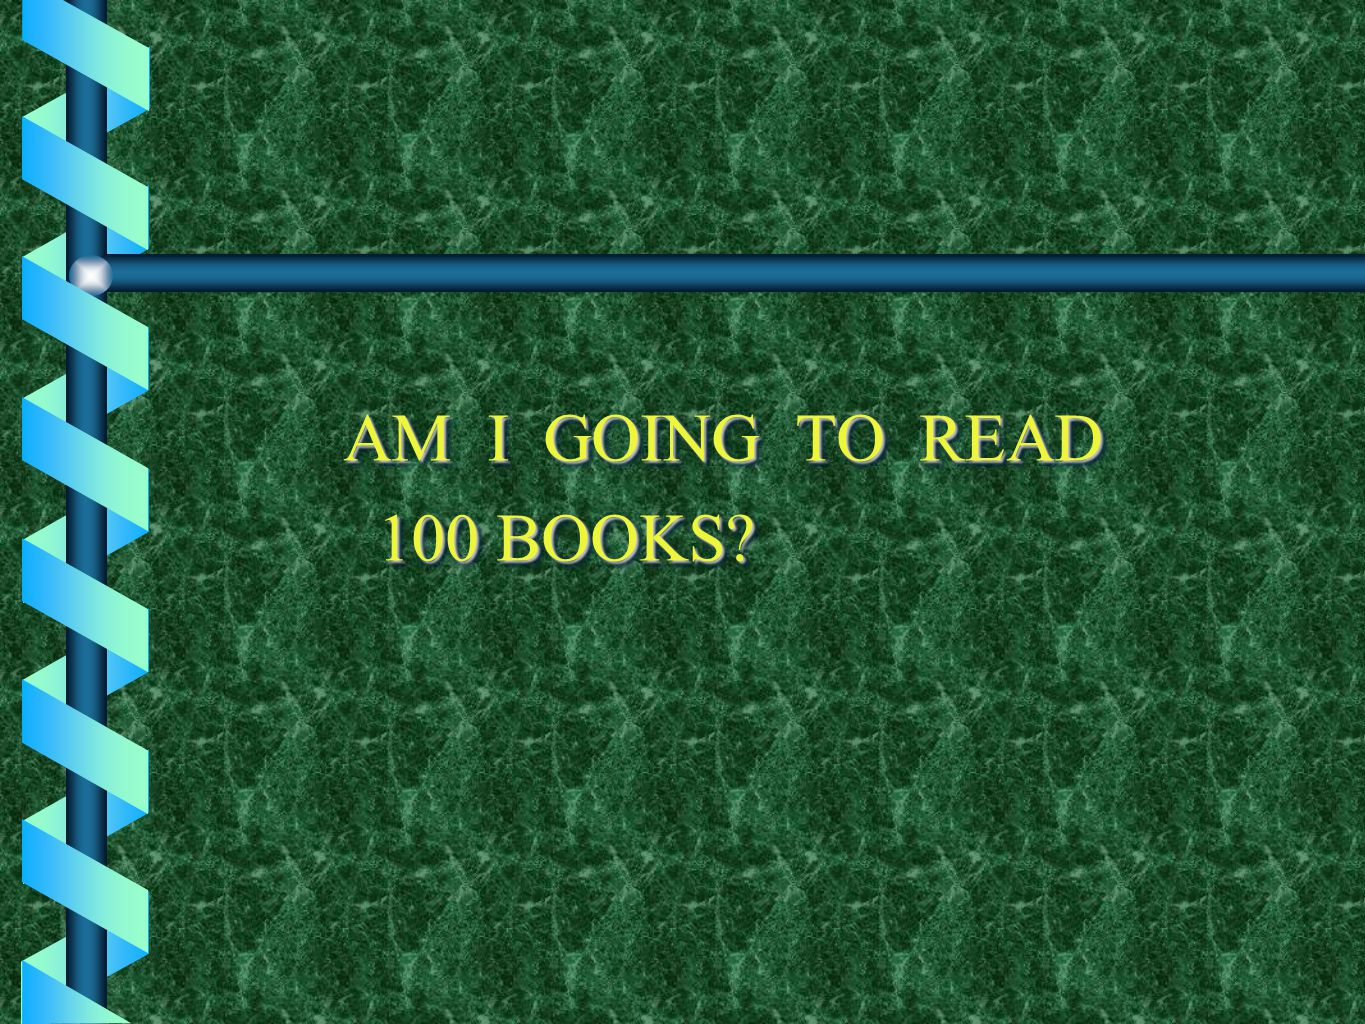 AM I GOING TO READ 100 BOOKS